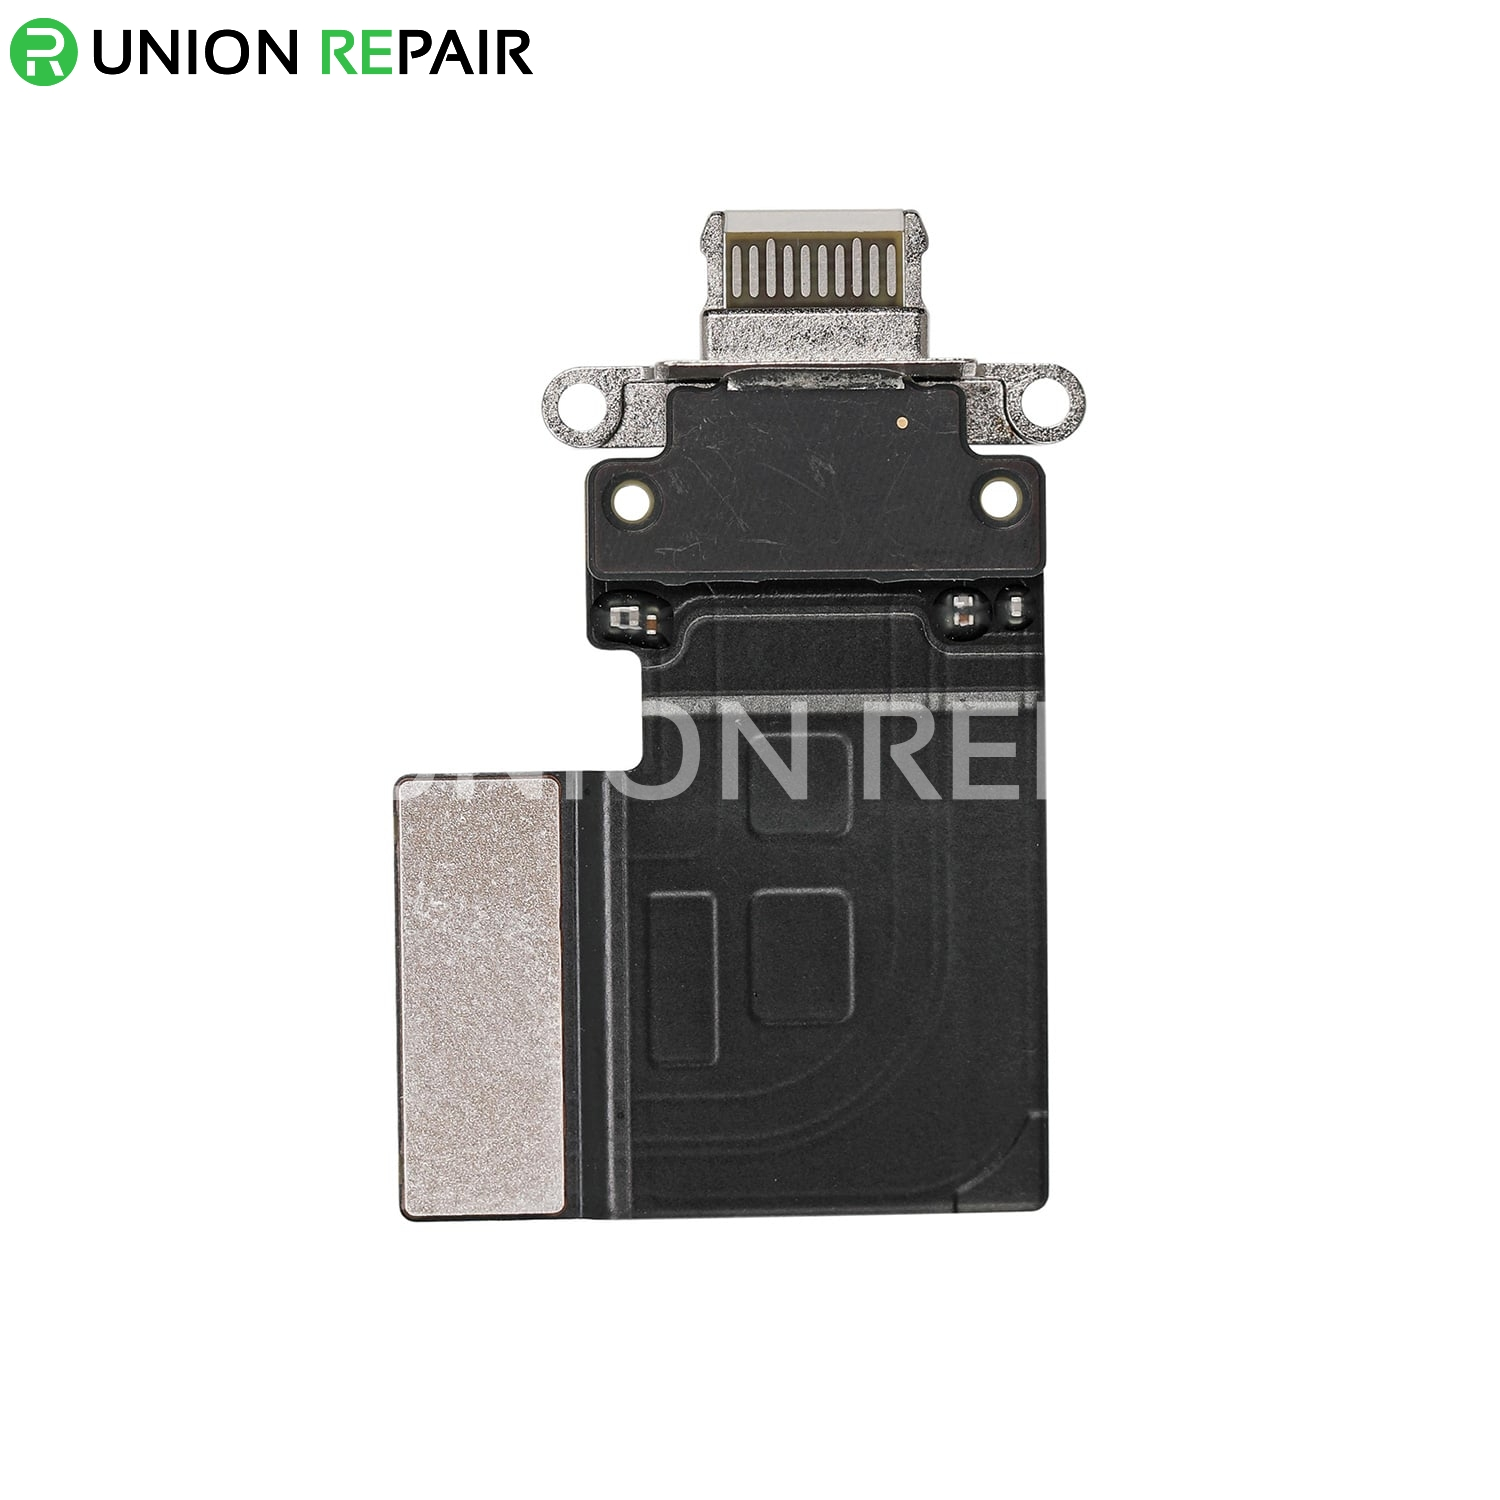 "Replacement for iPad Pro 11""/Pro 12.9 3rd Gen USB Charging Connector Flex Cable - White"